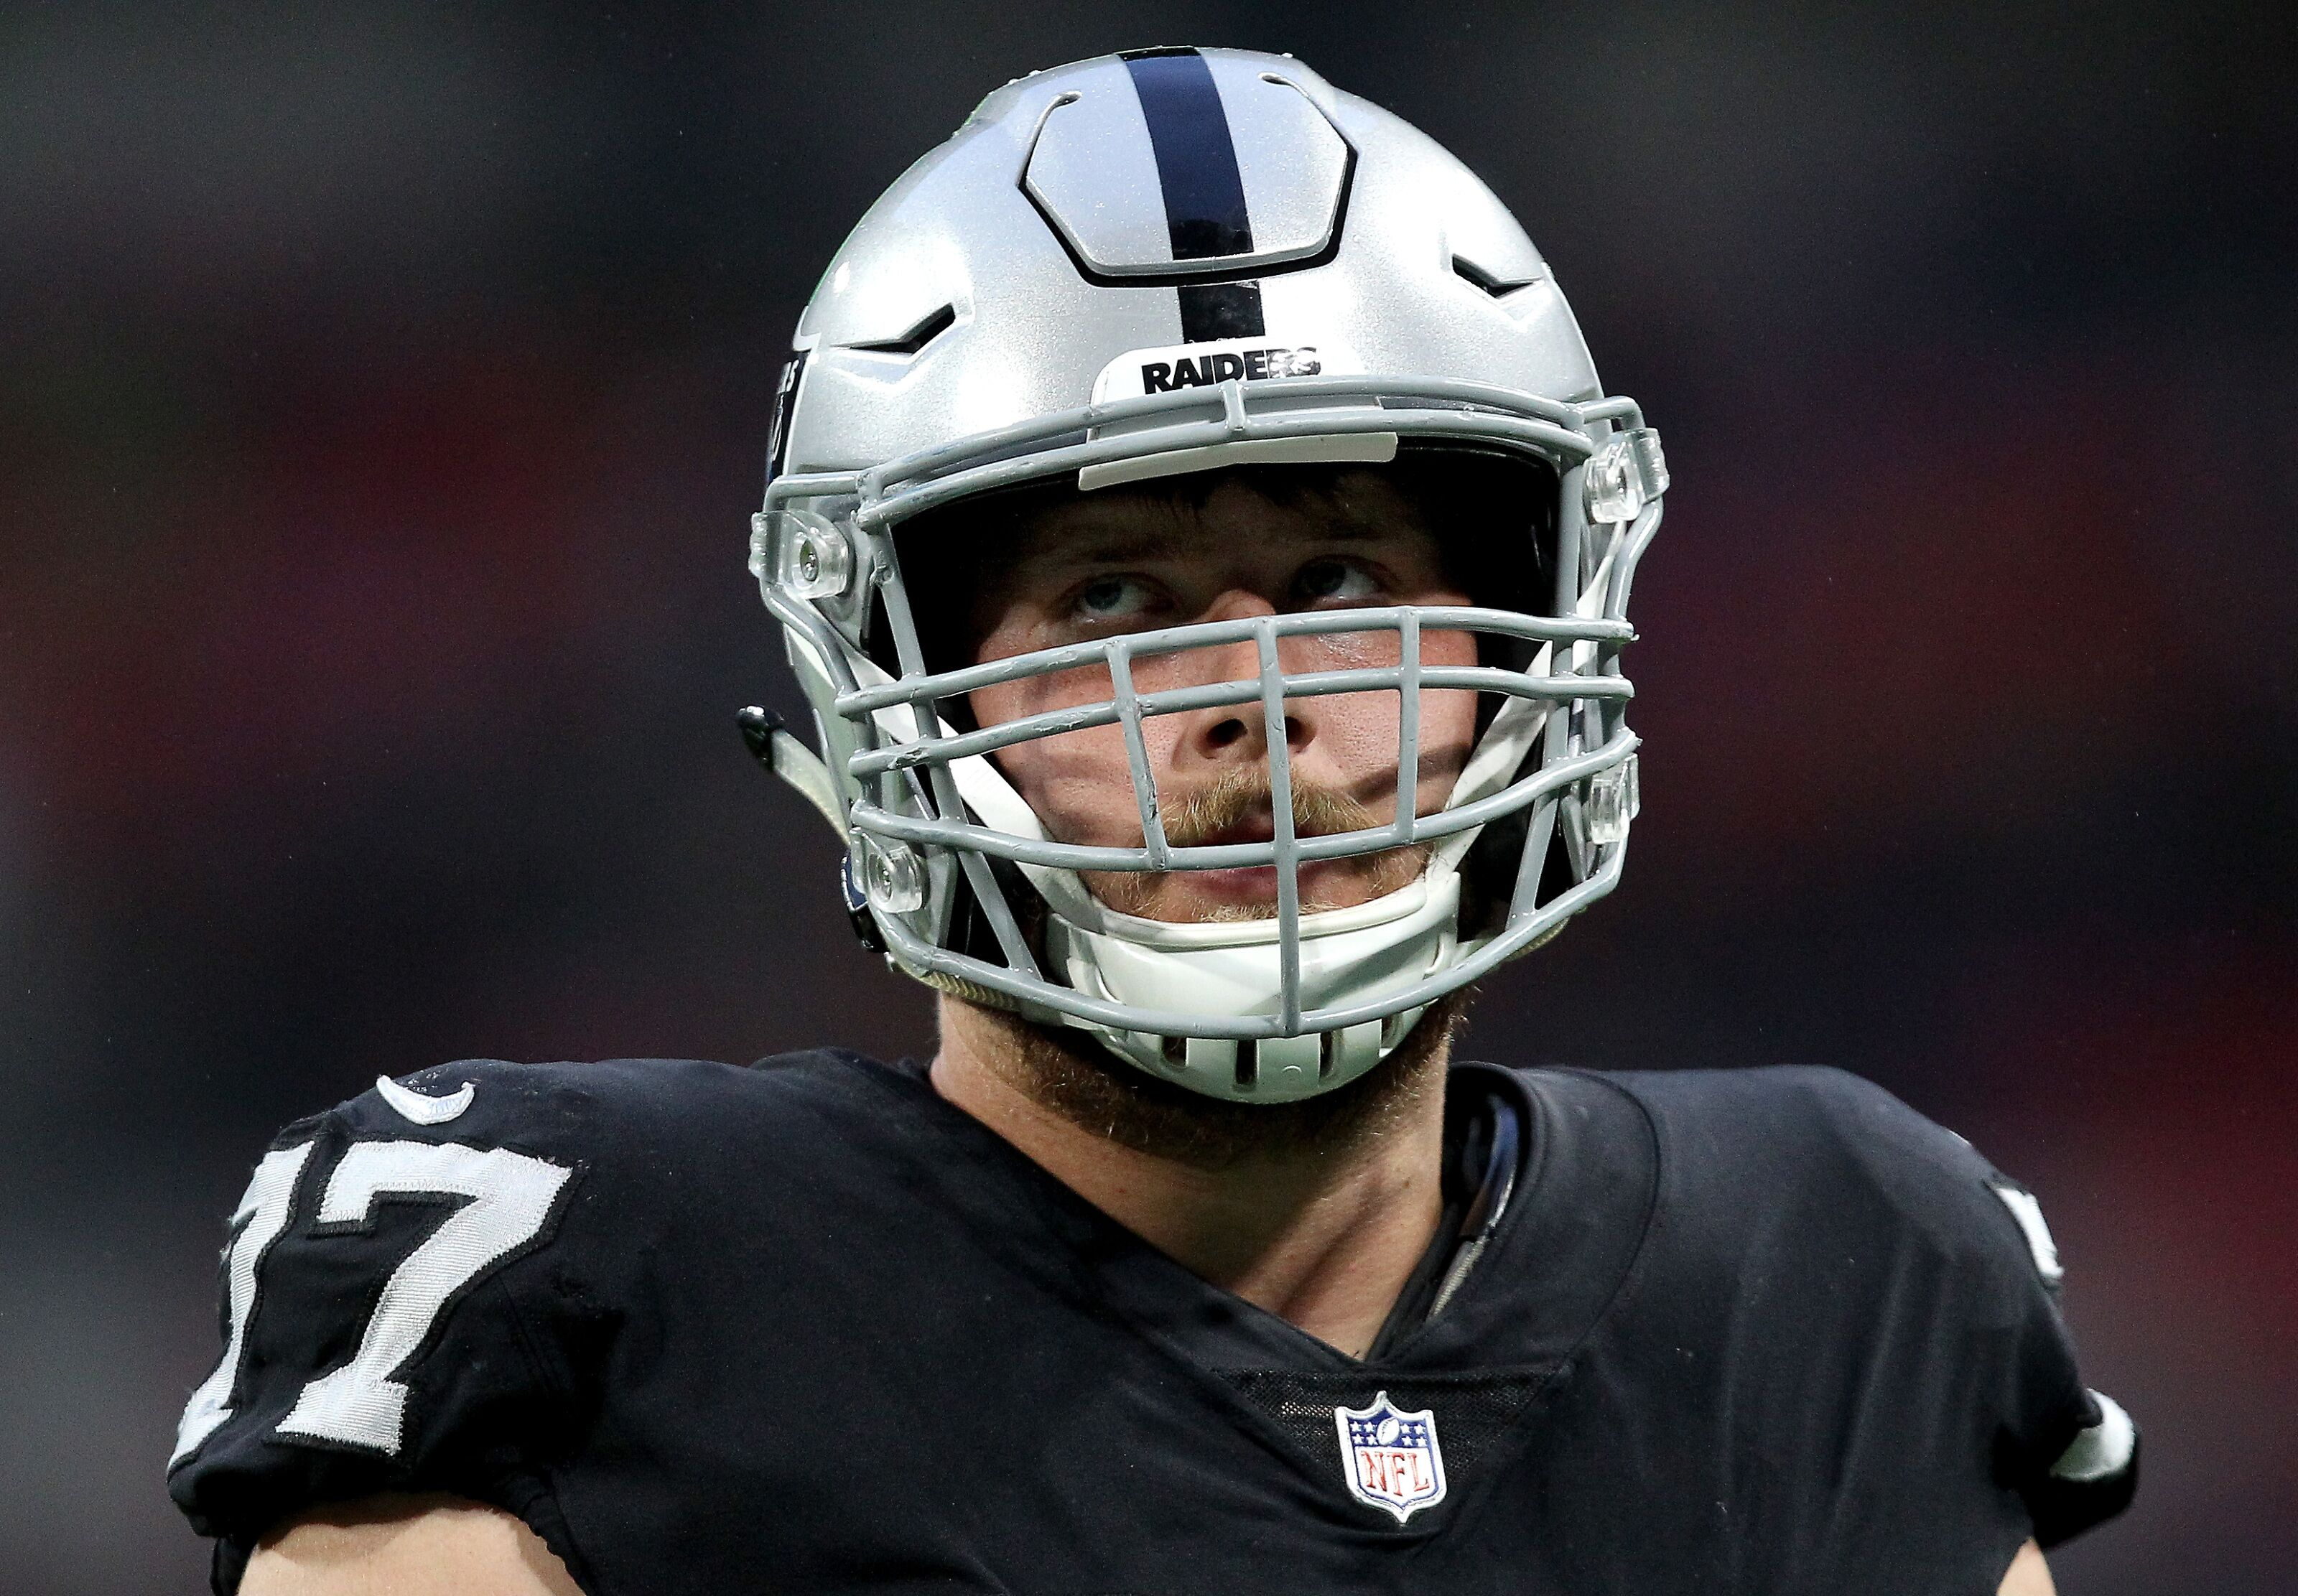 Oakland Raiders: What can we expect from Kolton Miller in 2019?